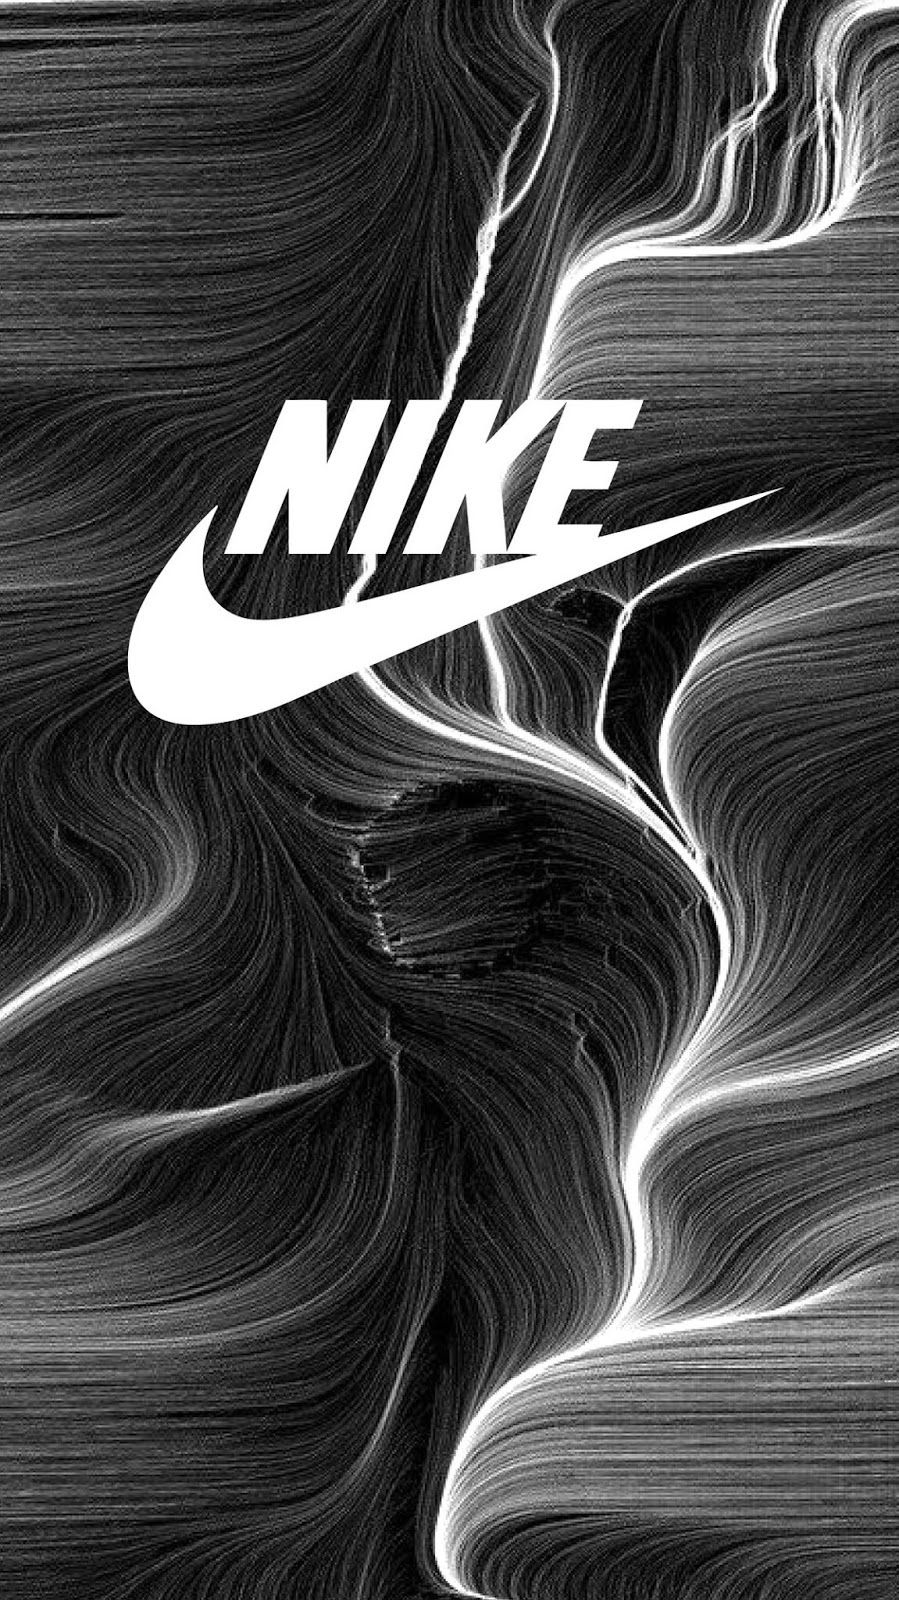 Nike Logo Hd Wallpapers For Iphone X Iphone Xr Iphone 11 Etc Nike Wallpaper Nike Logo Wallpapers Nike Wallpaper Backgrounds